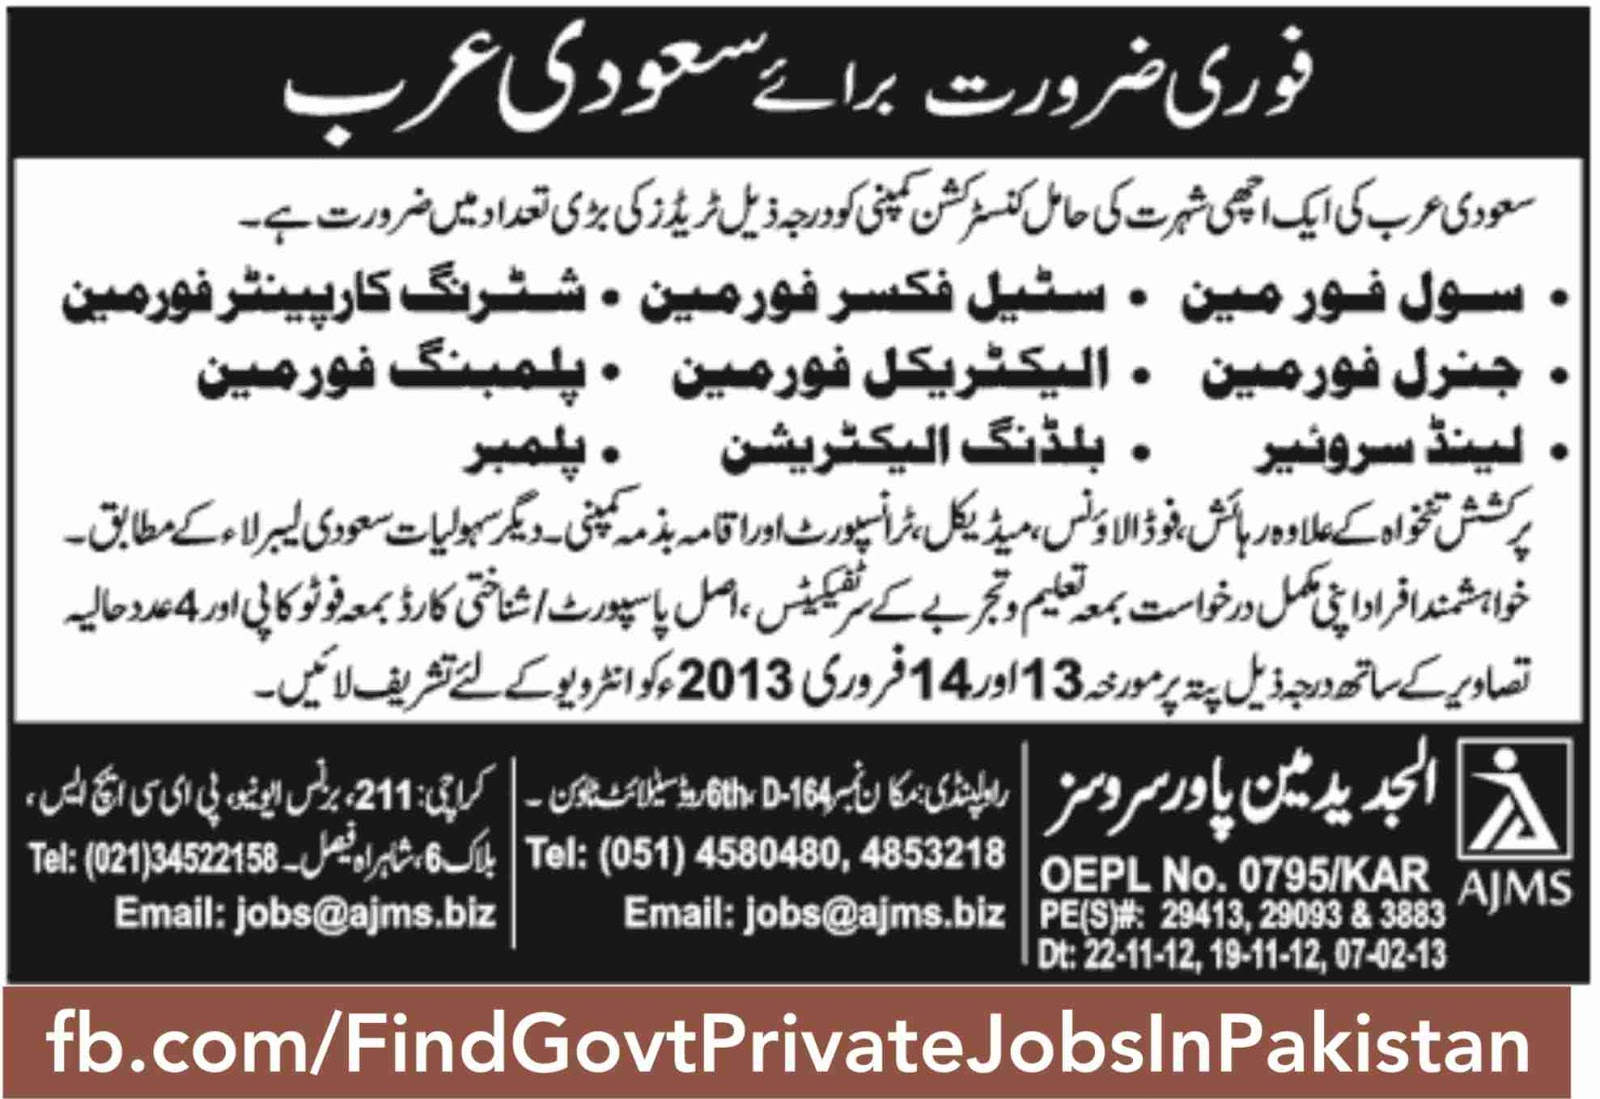 saudia arabia requried technical staff job ads sunday